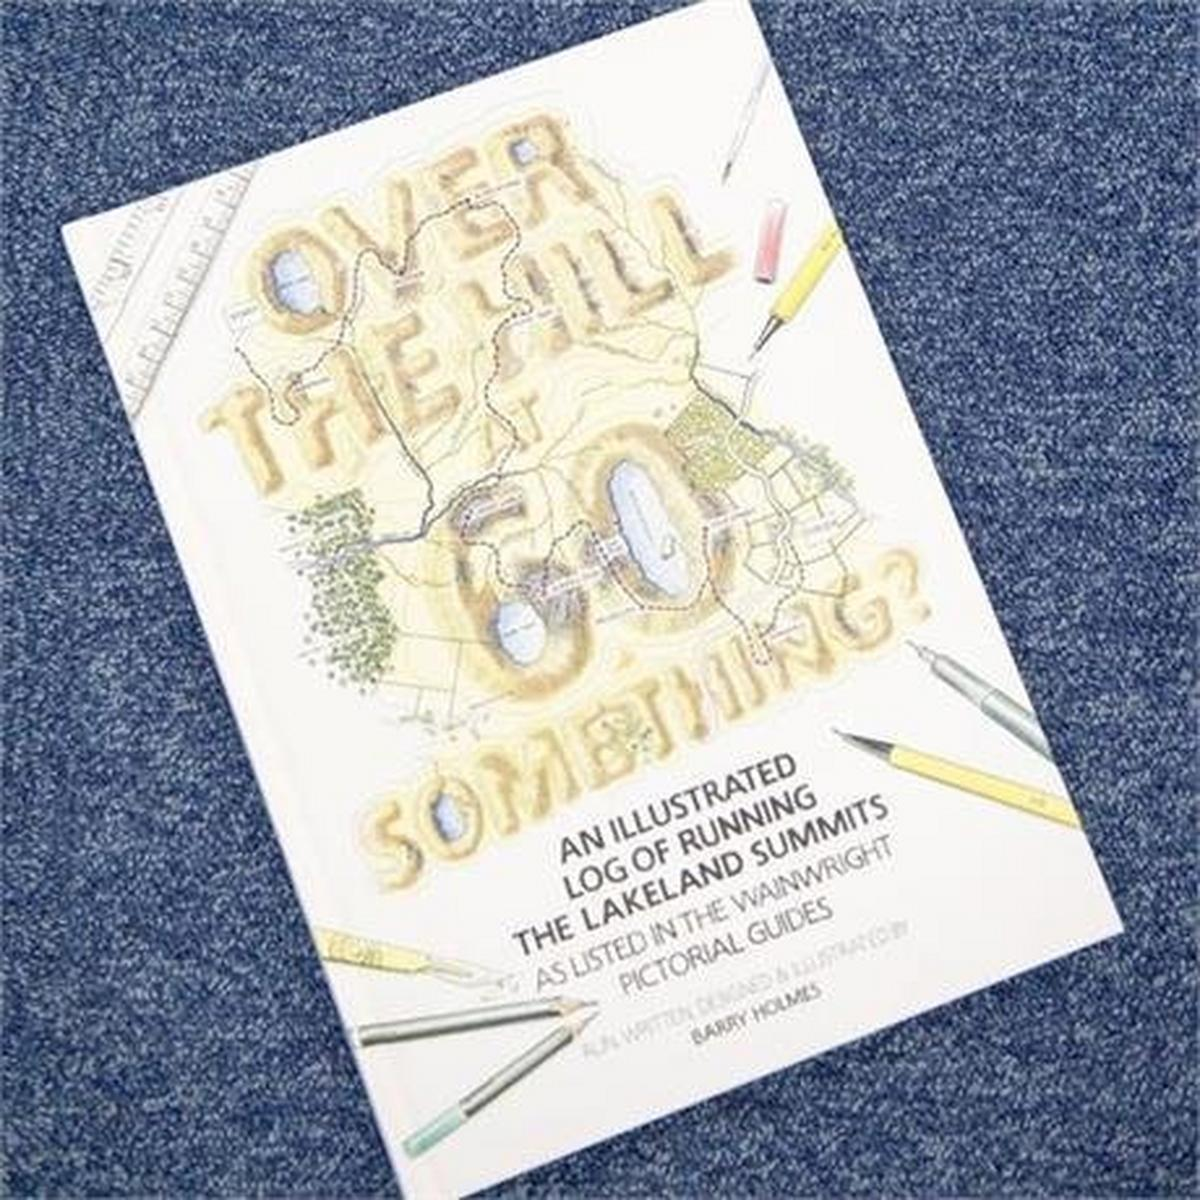 Miscellaneous Book: Over The Hill at 60 Something? - New Edition